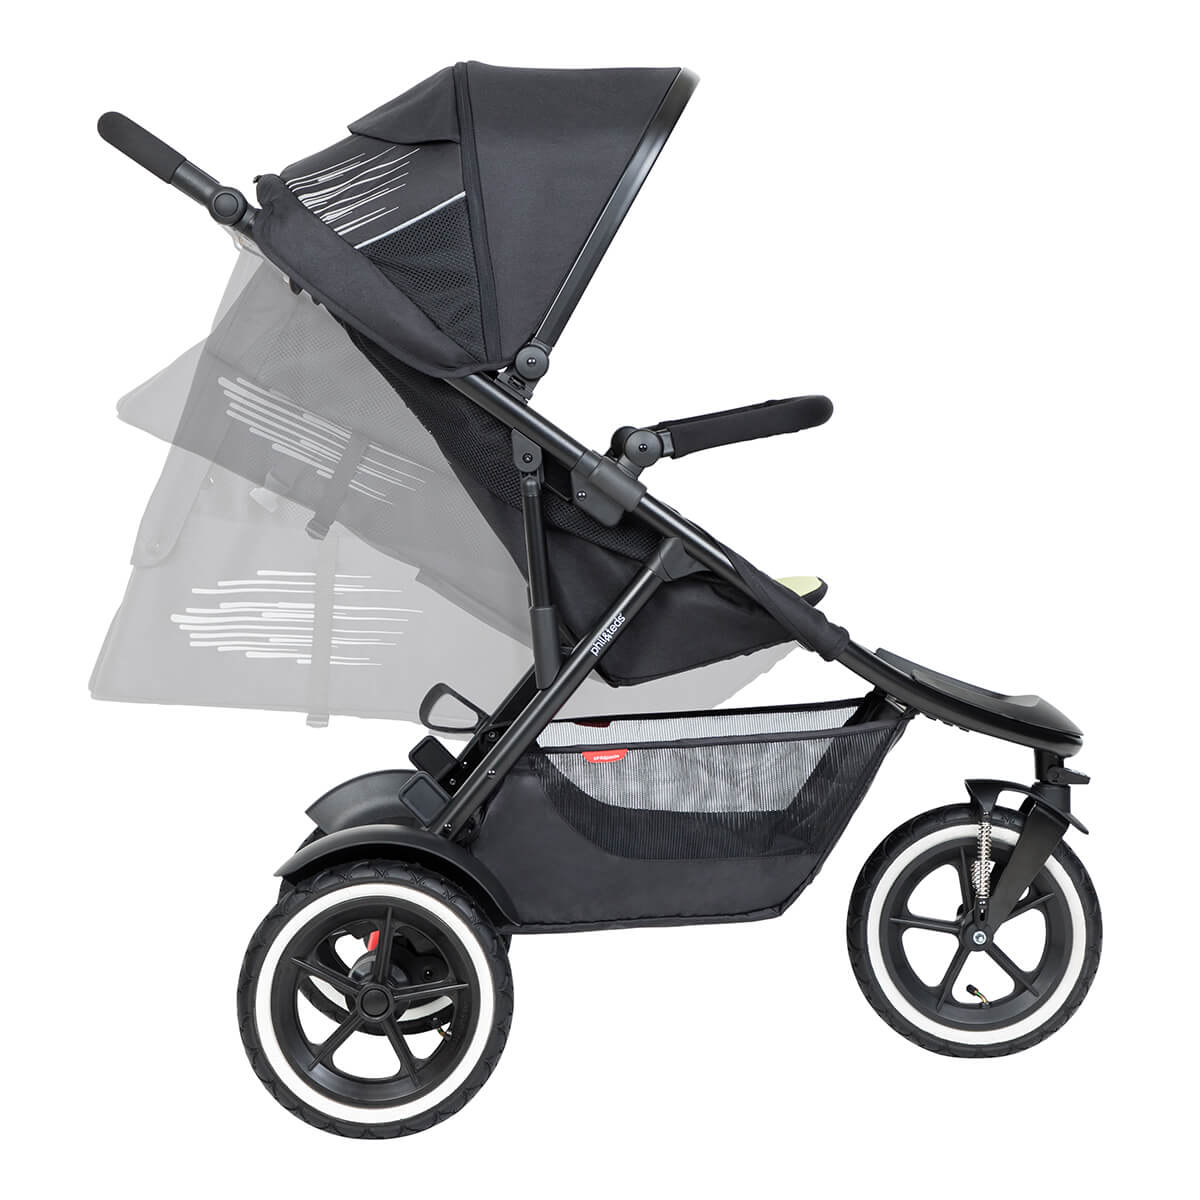 https://cdn.accentuate.io/4546158166121/19119322628201/philteds-sport-buggy-can-recline-in-multiple-angles-including-full-recline-for-newborn-baby-v1625778355145.jpg?1200x1200